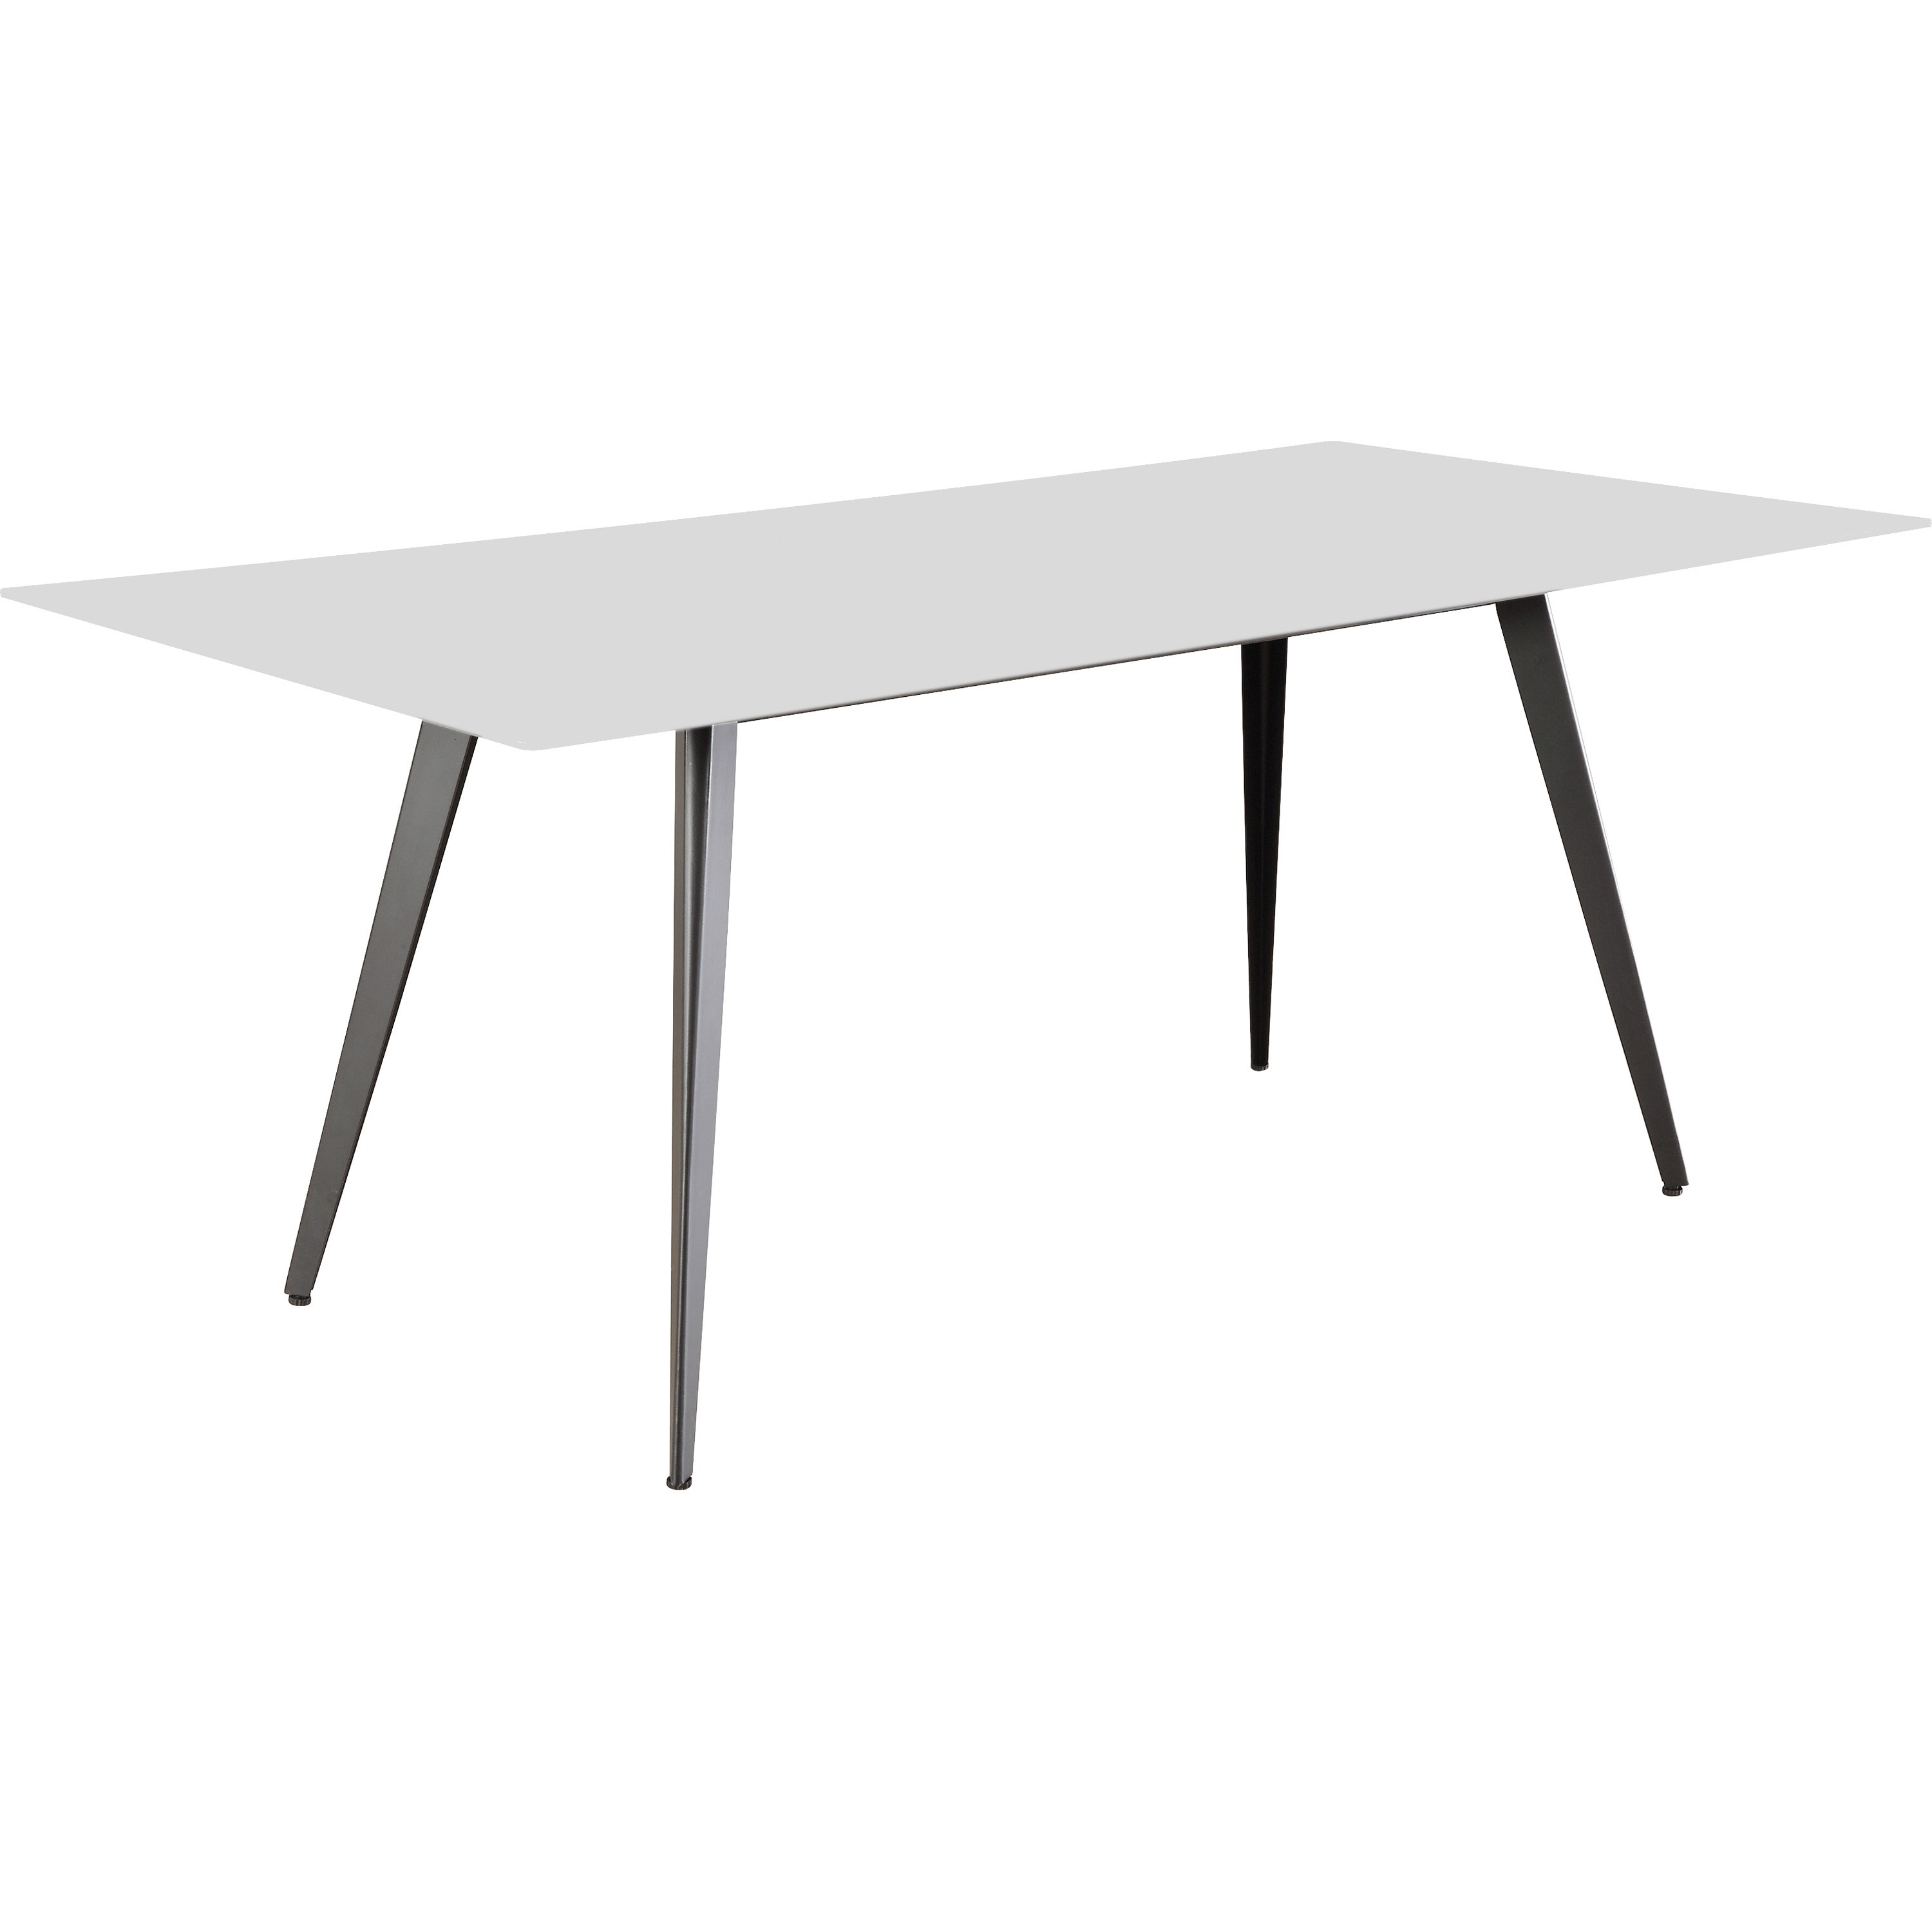 Kamloops Office Systems Furniture Furniture Collections Desks - White laminate conference table